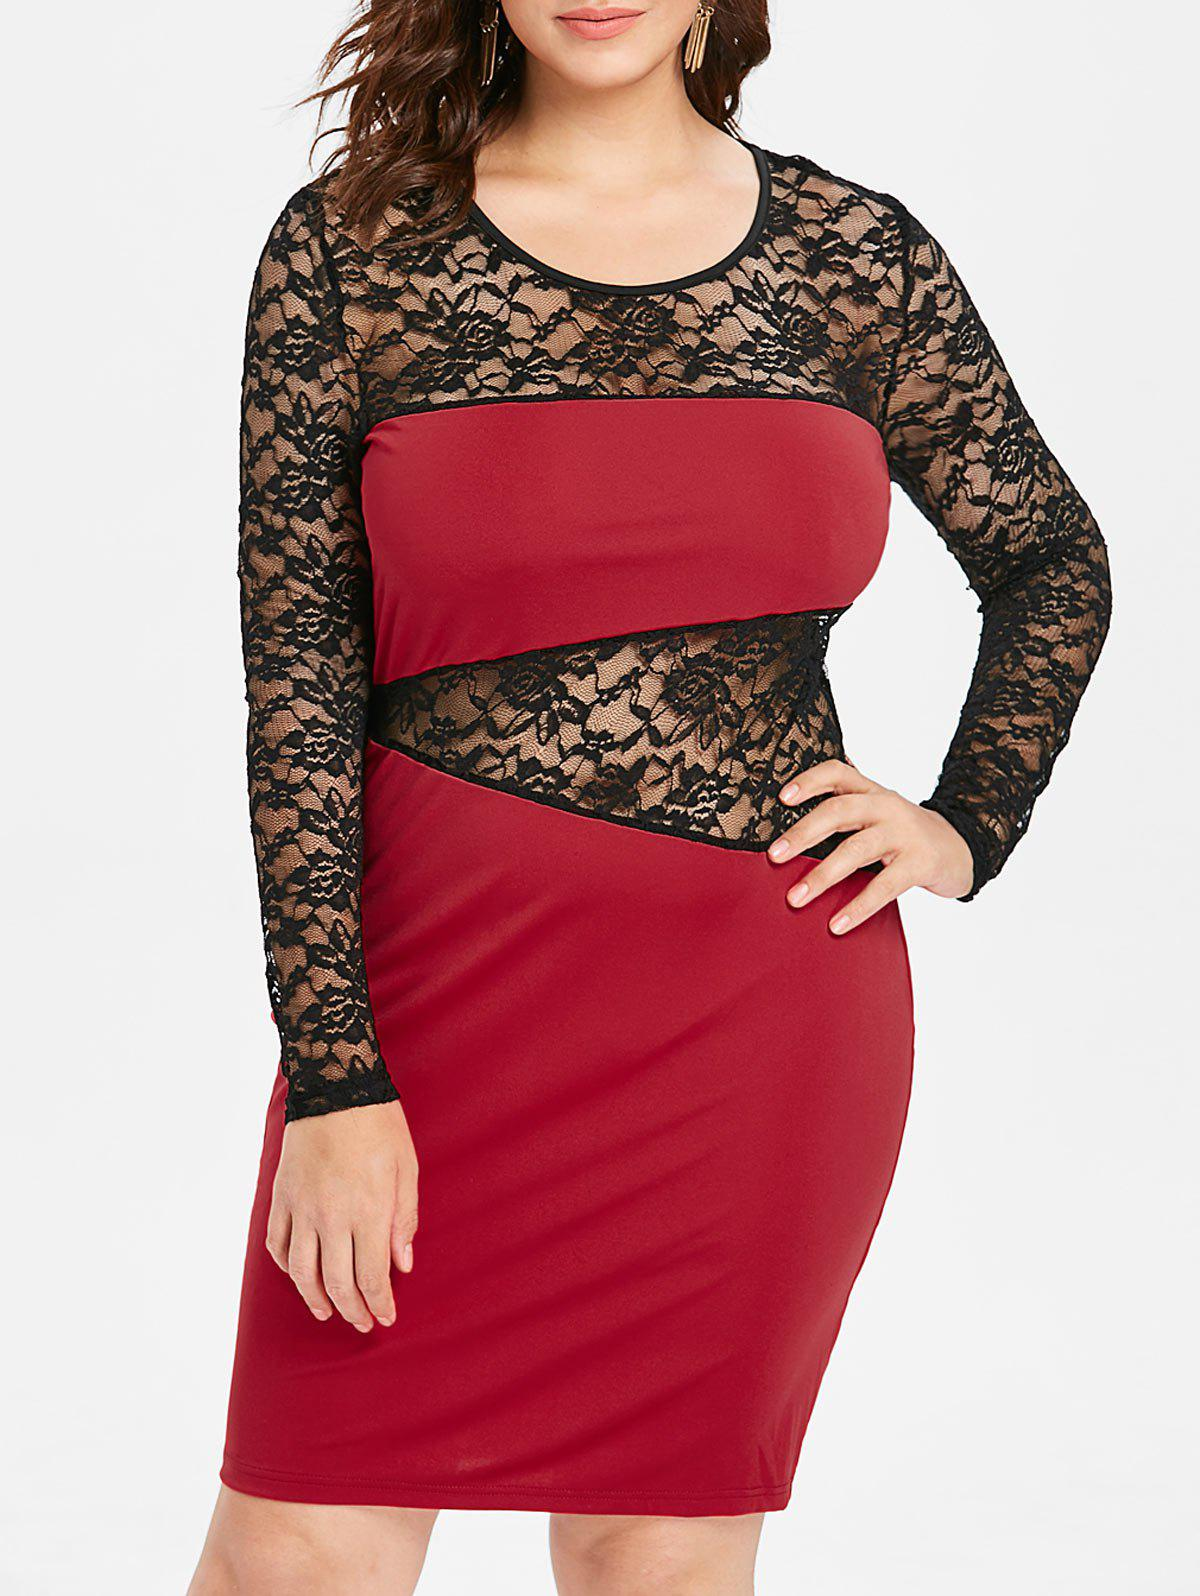 Buy Plus Size See Through Lace Insert Party Dress